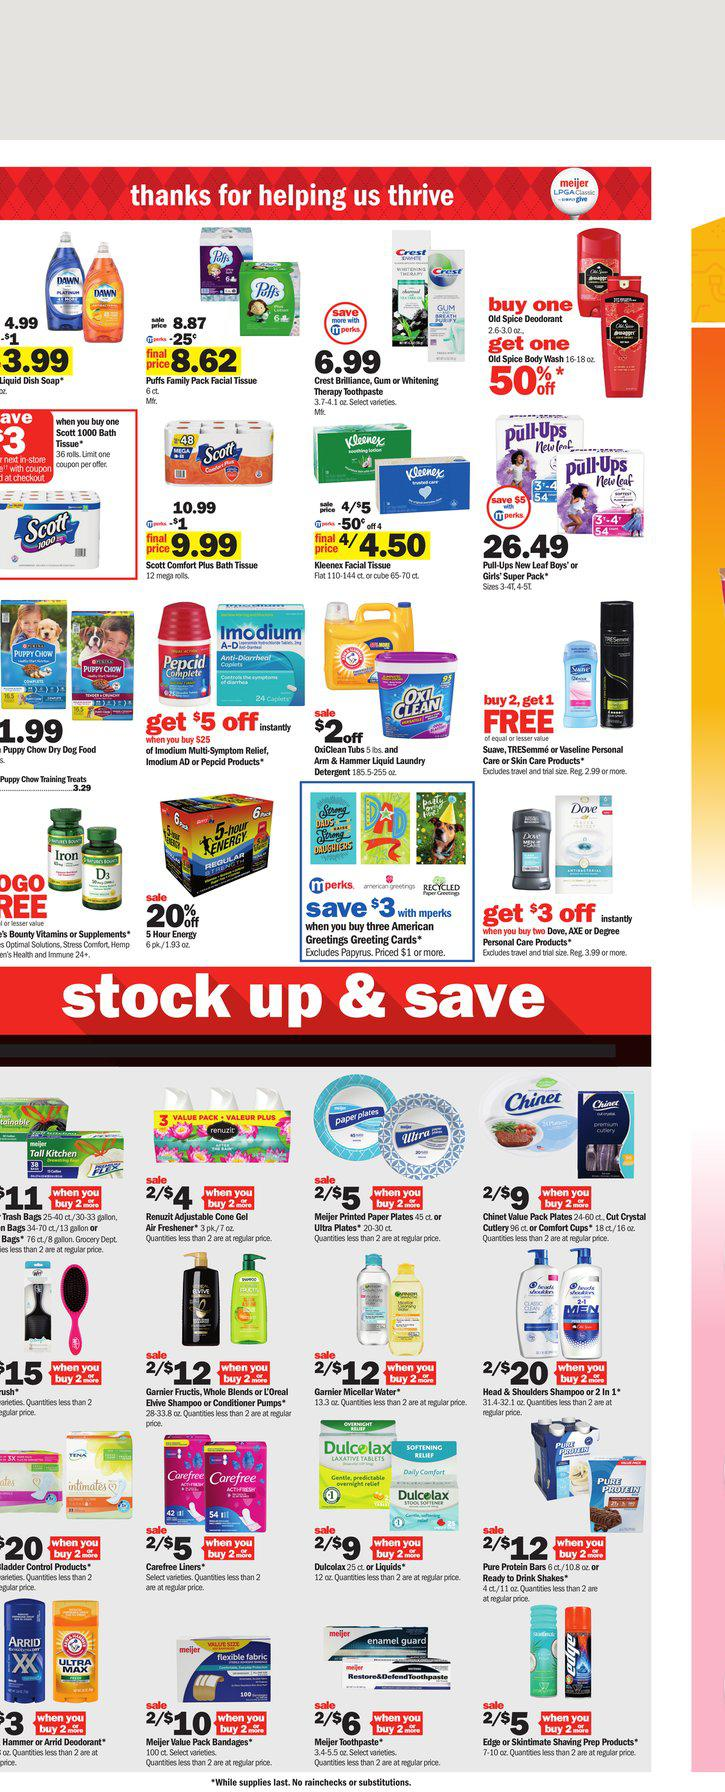 06.06.2021 Meijer ad 16. page